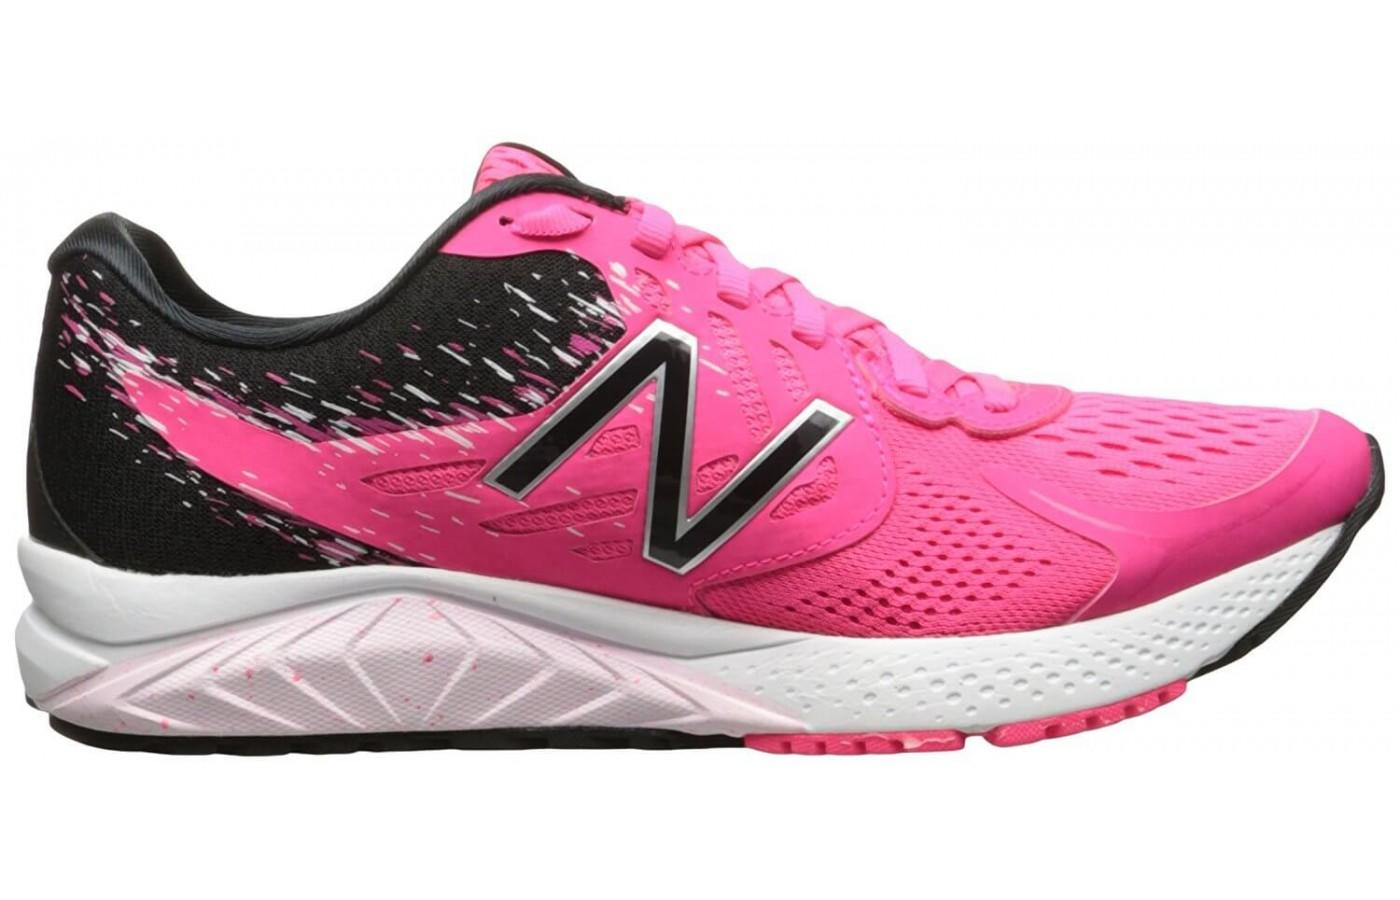 This shoe provides added stability for the runner who needs over pronation support.